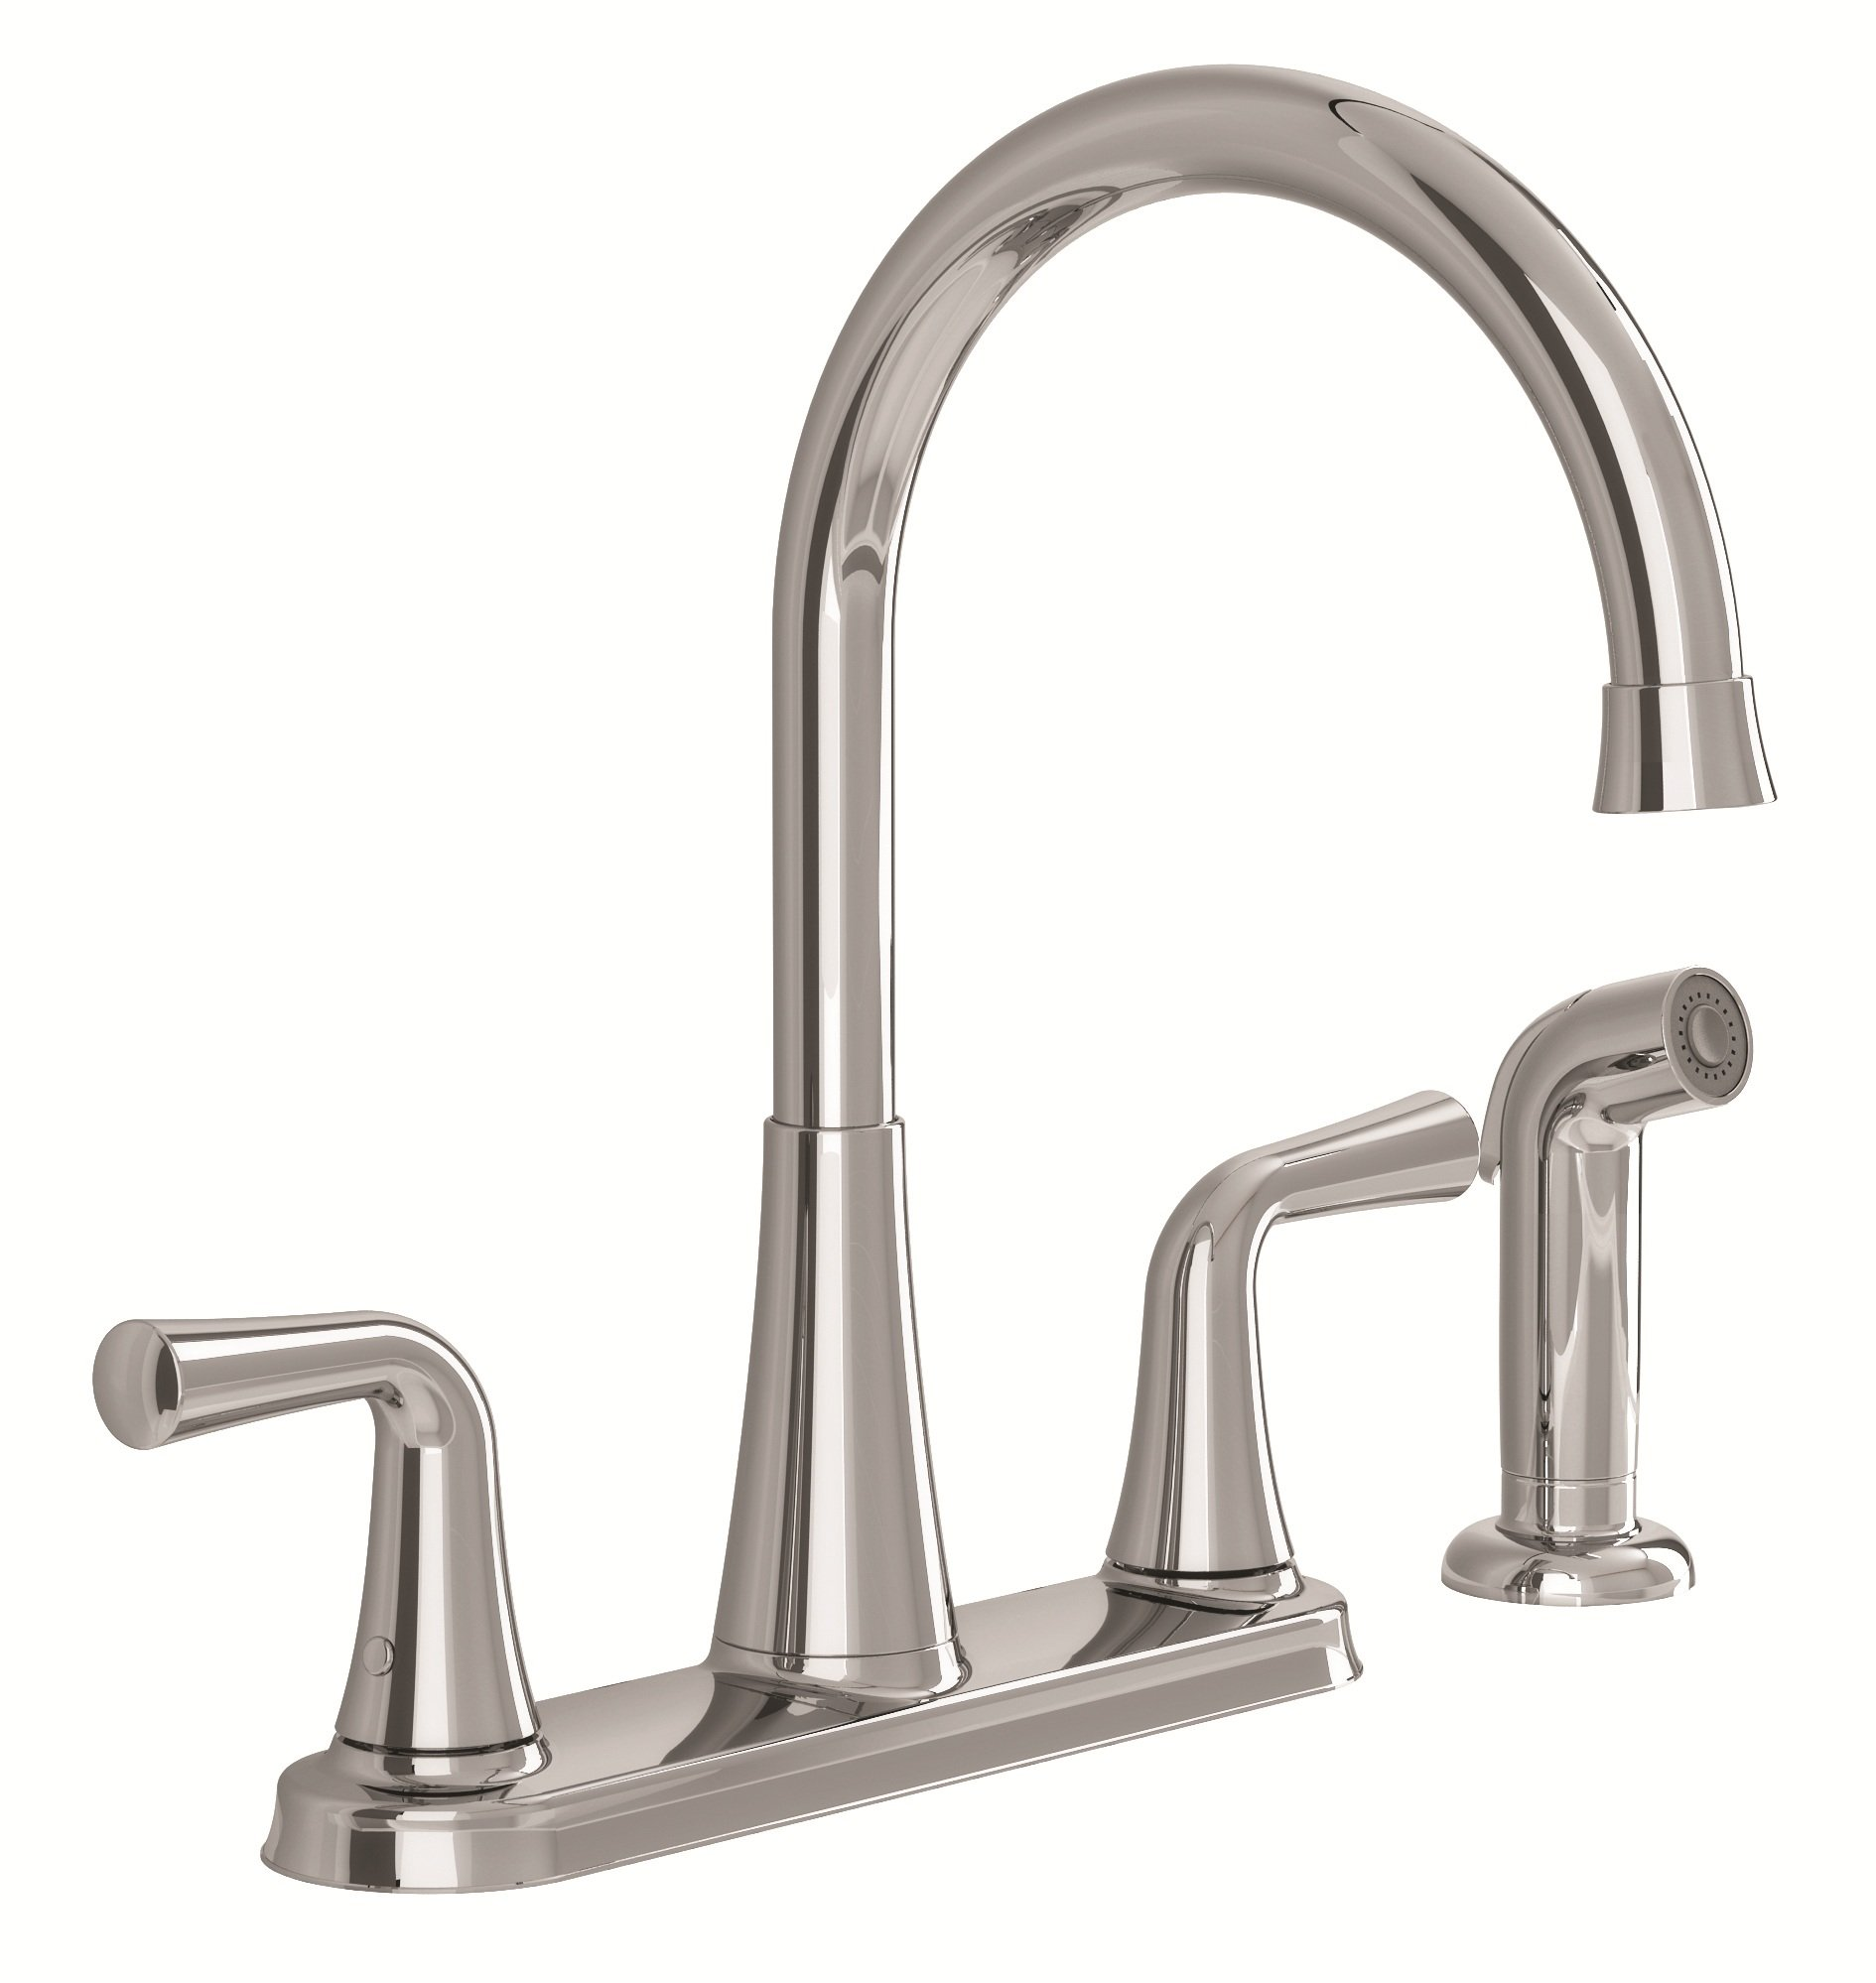 American Standard 002 Angeline Two Handle Kitchen Faucet